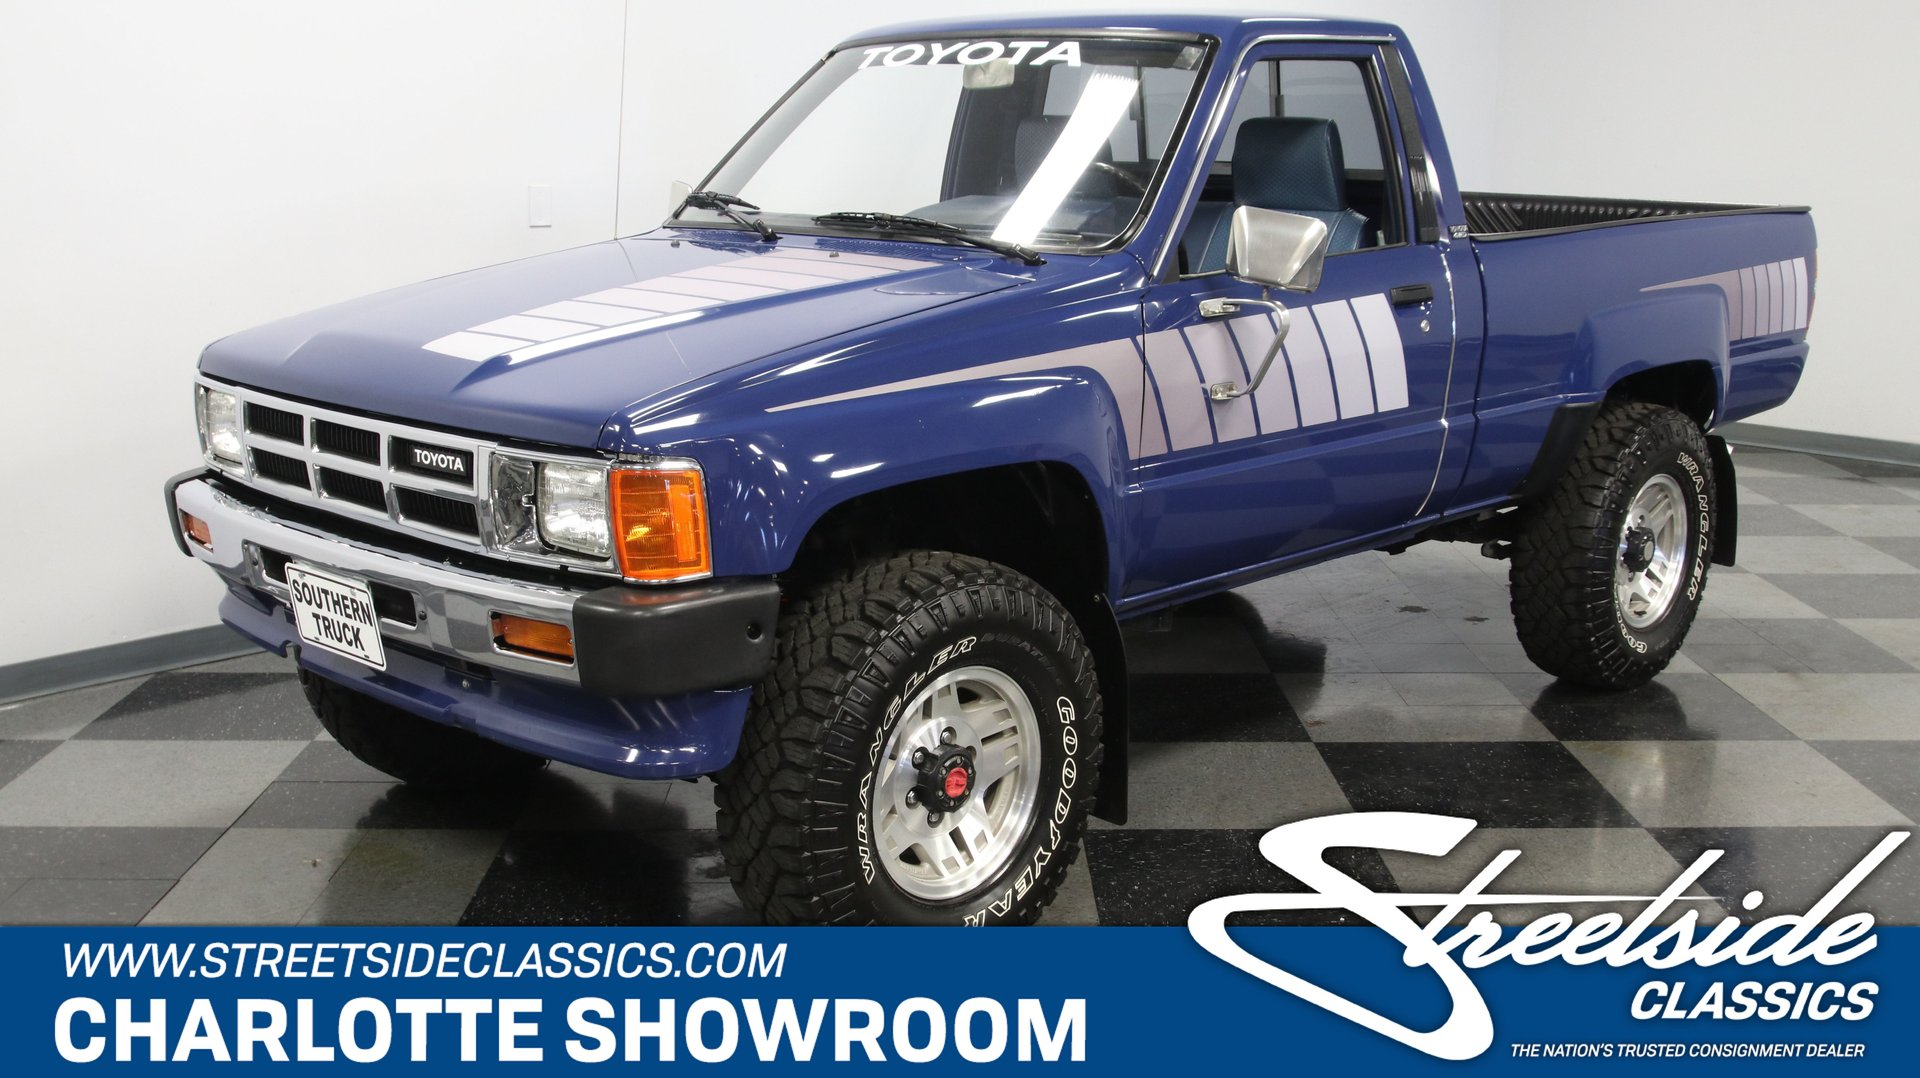 1986 Toyota Pickup Classic Cars For Sale Streetside Classics The Nation S 1 Consignment Dealer